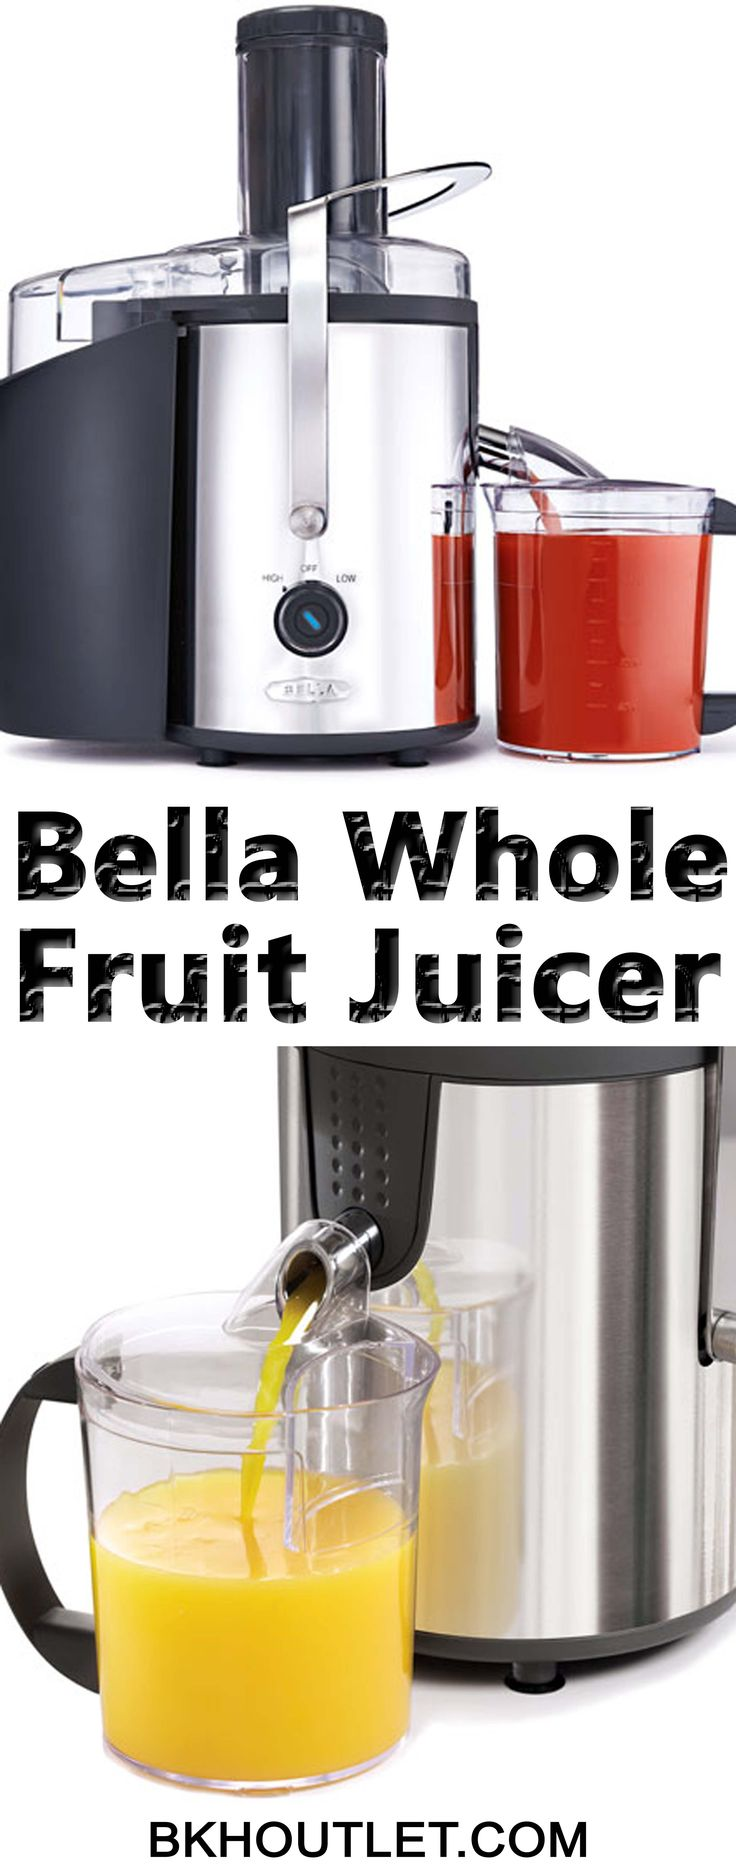 Life's just too short to chop fruit, so the new Bella High Power Whole Fruit Juicer is an absolute must, when it comes to 'the nutrition delivered how you want it' stakes. │kitchen appliances │blender │coffee maker │hot plates │kettles │mixers │slow cookers │steamers │toasters │kitchen tools #kitchenappliances #blender #coffeemaker #hotplates #kettles #mixers #slowcookers #steamers #toasters #kitchentools